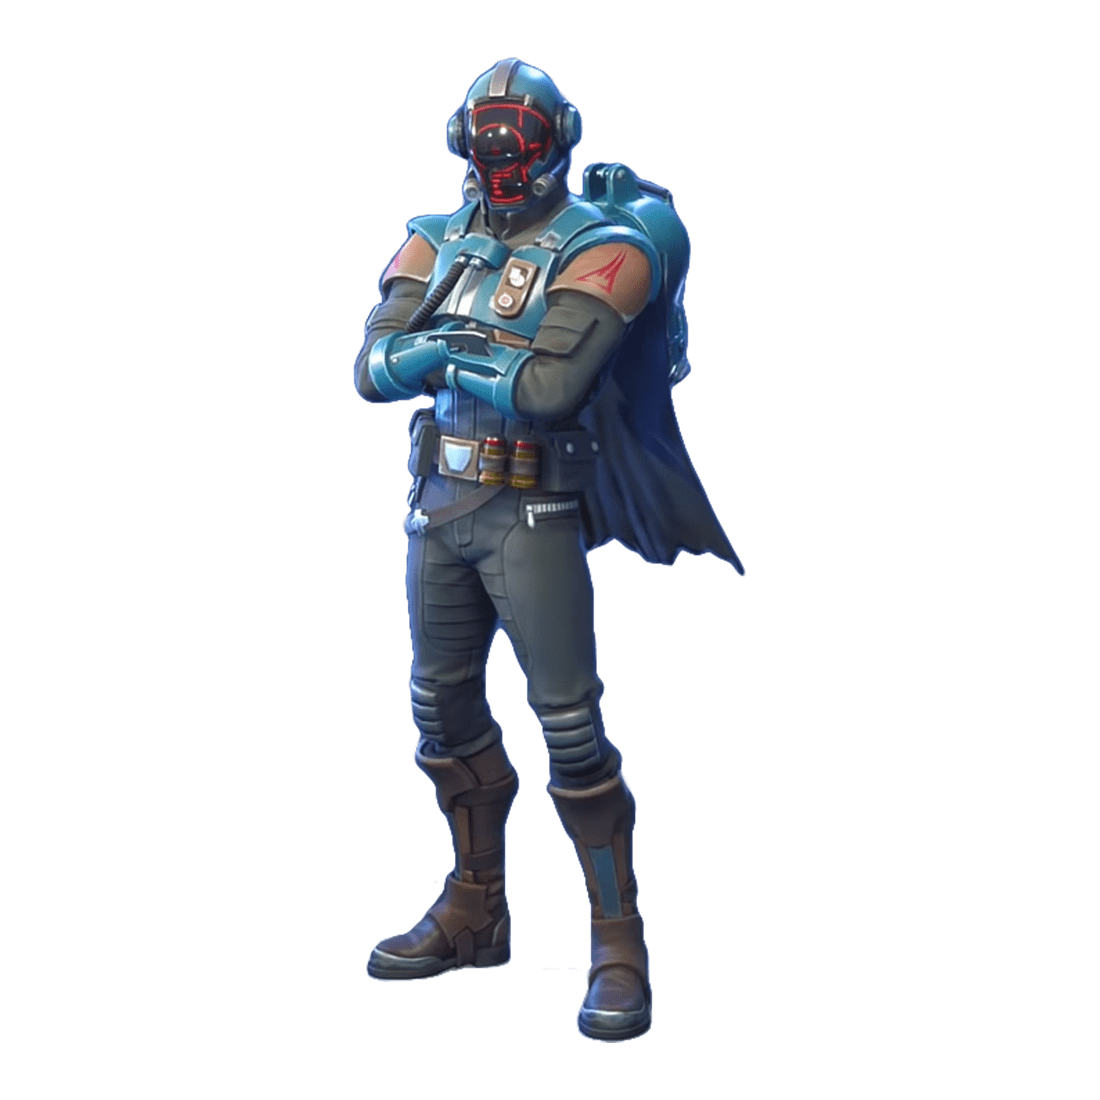 Fortnite Visitor skin PNG Image